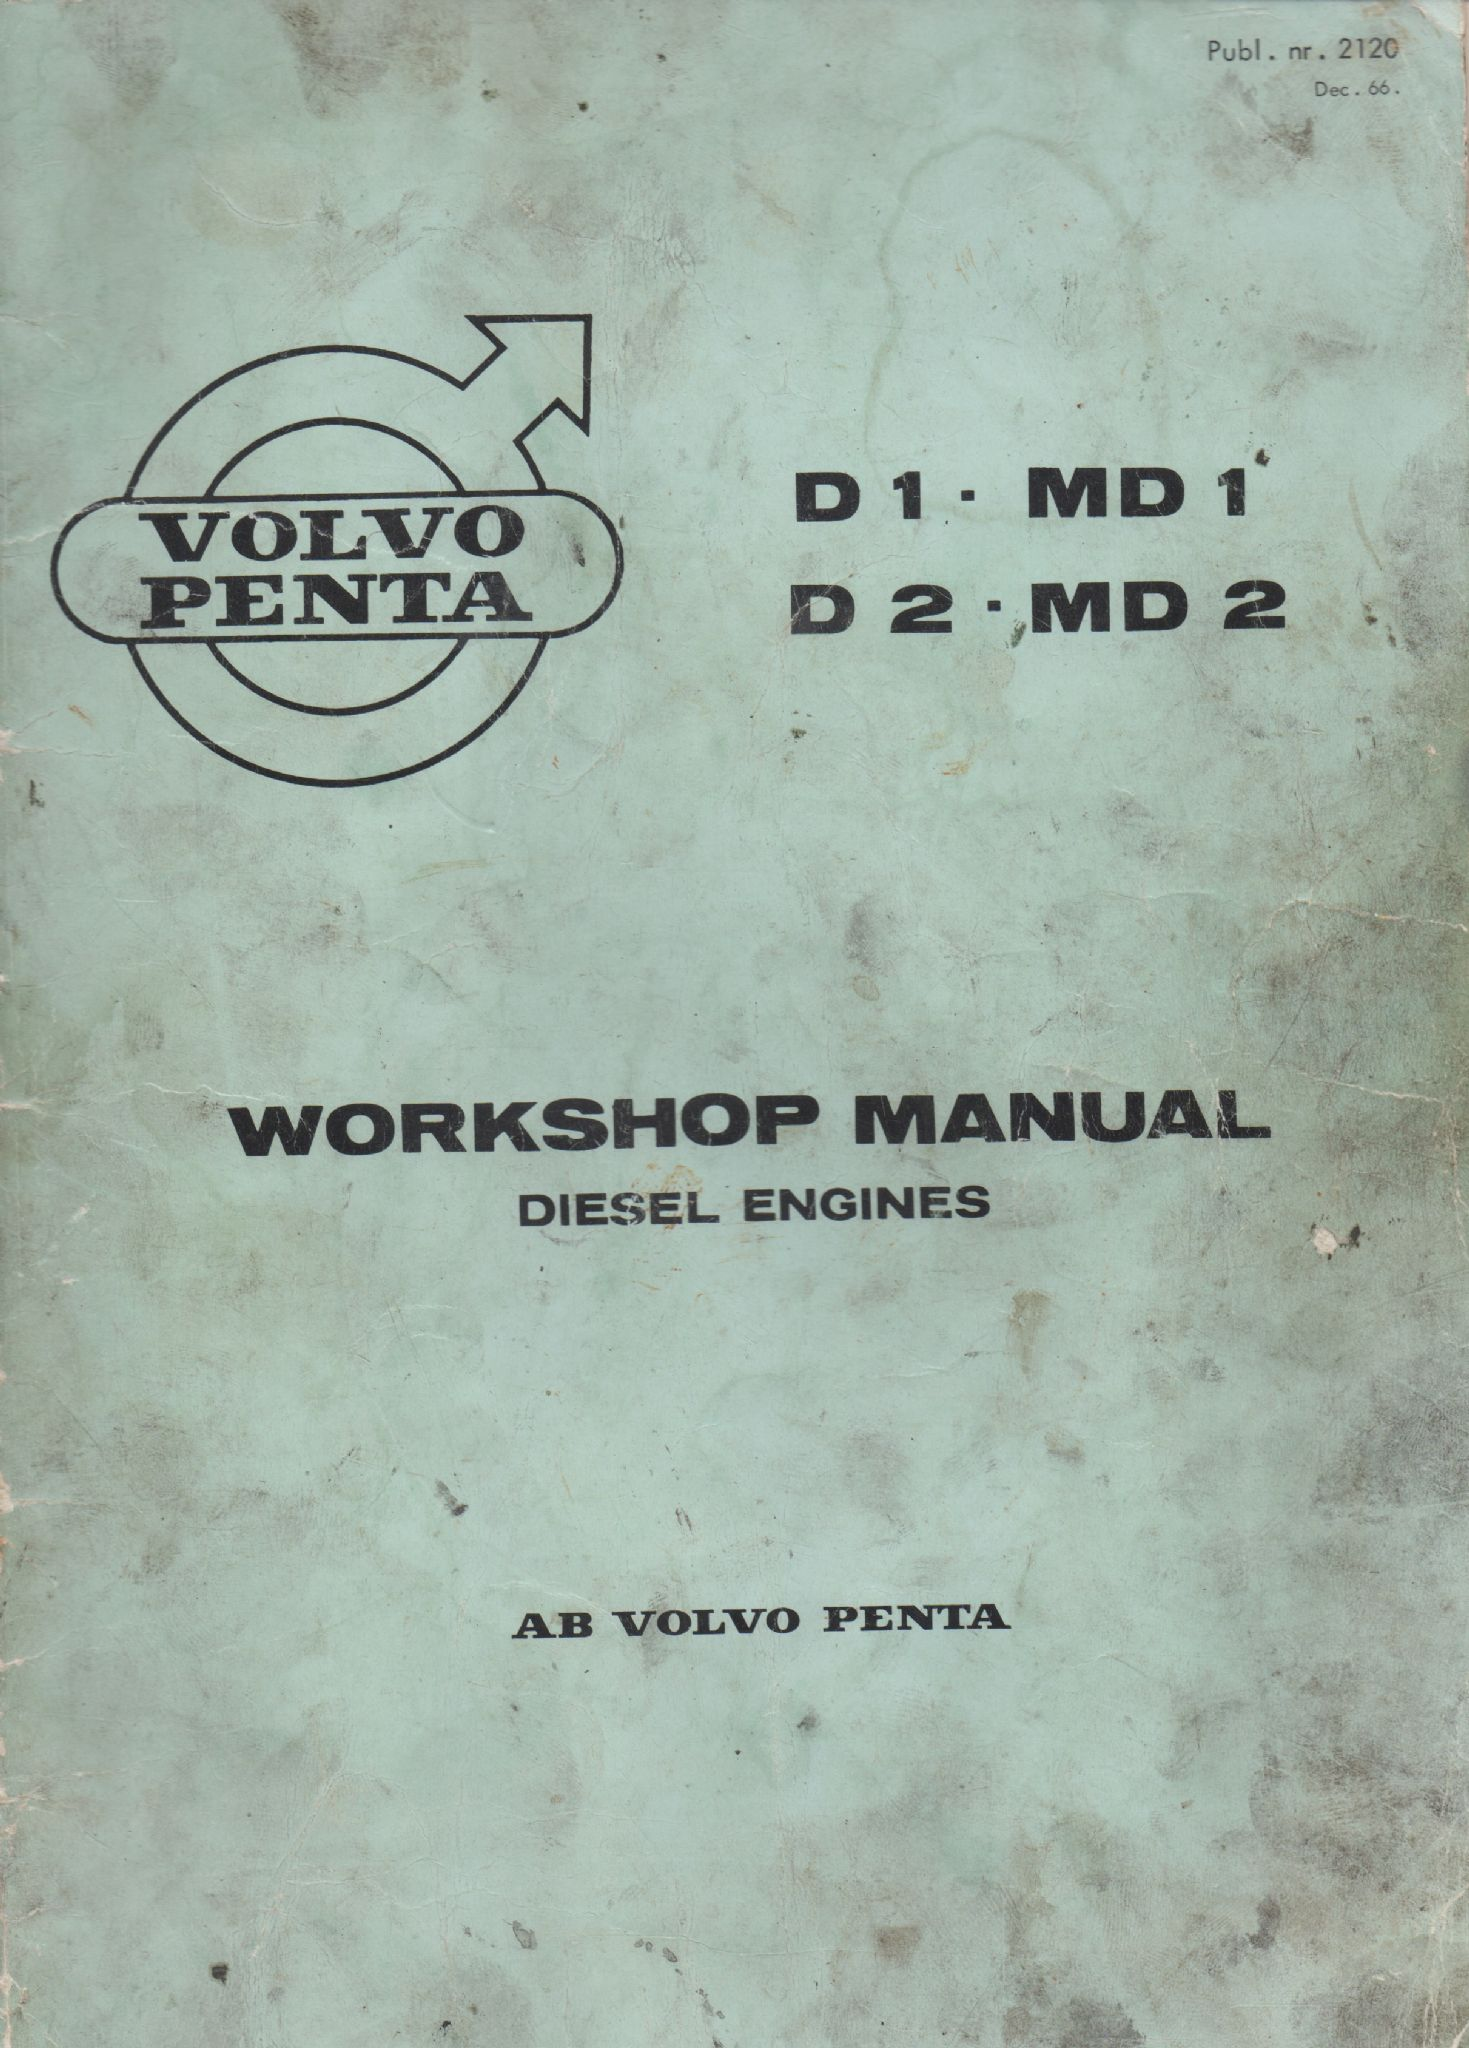 volvo penta workshop manual md1 md2 rh boatpartsandspares co uk volvo penta service manual free download volvo penta tmd22 service manual